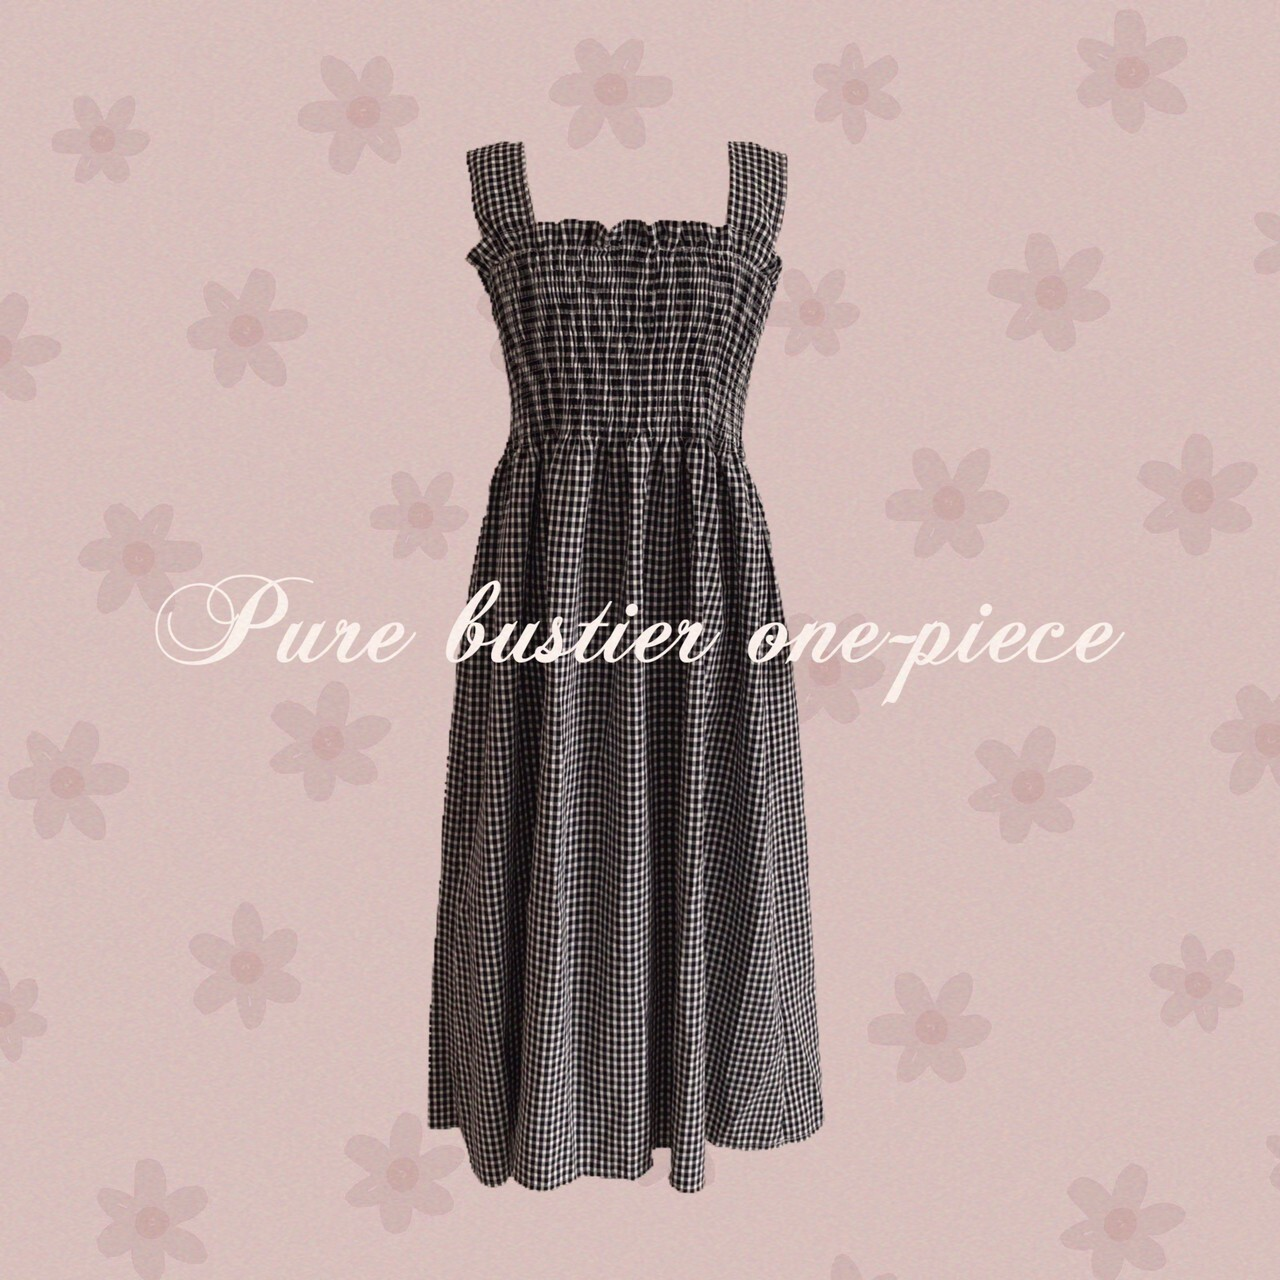 【meltie】pure bustier one-piece